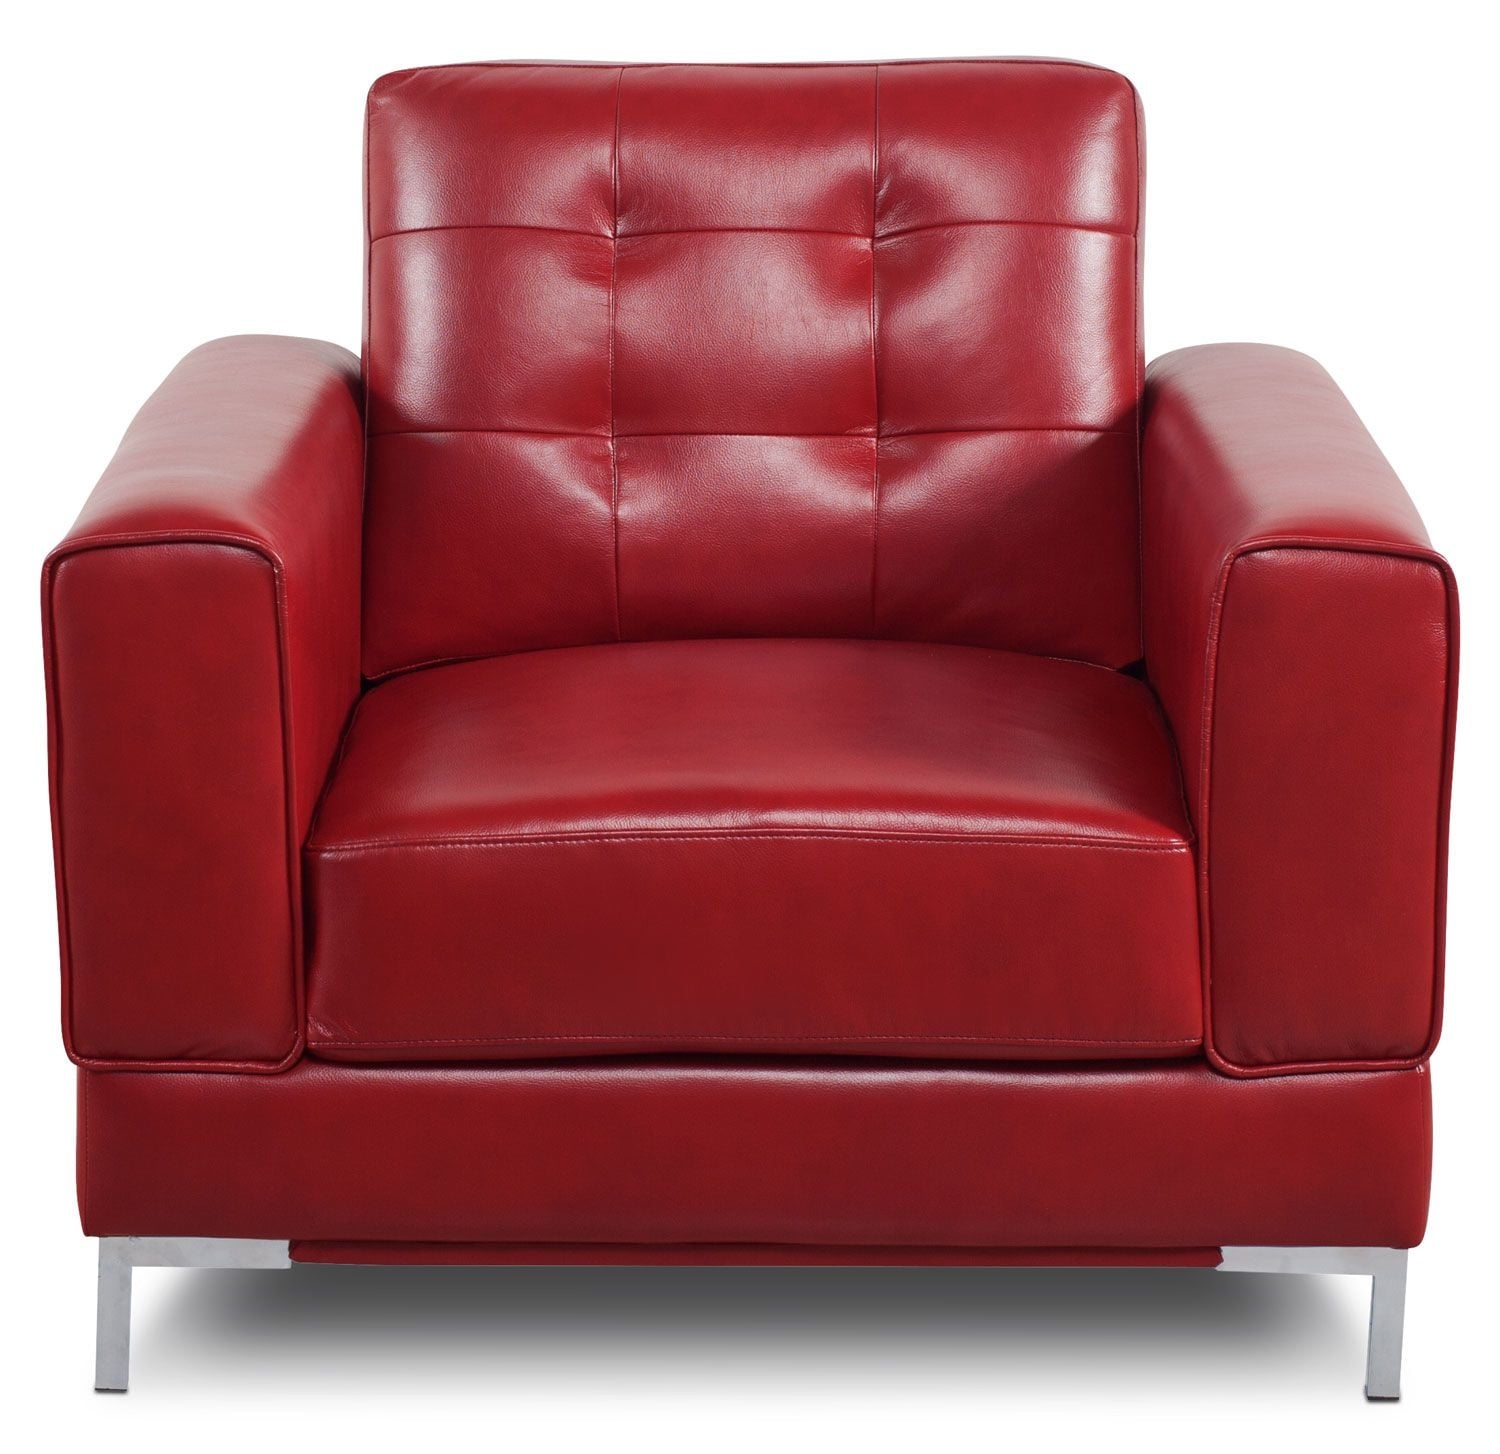 Myer Leather-Look Fabric Chair - Red